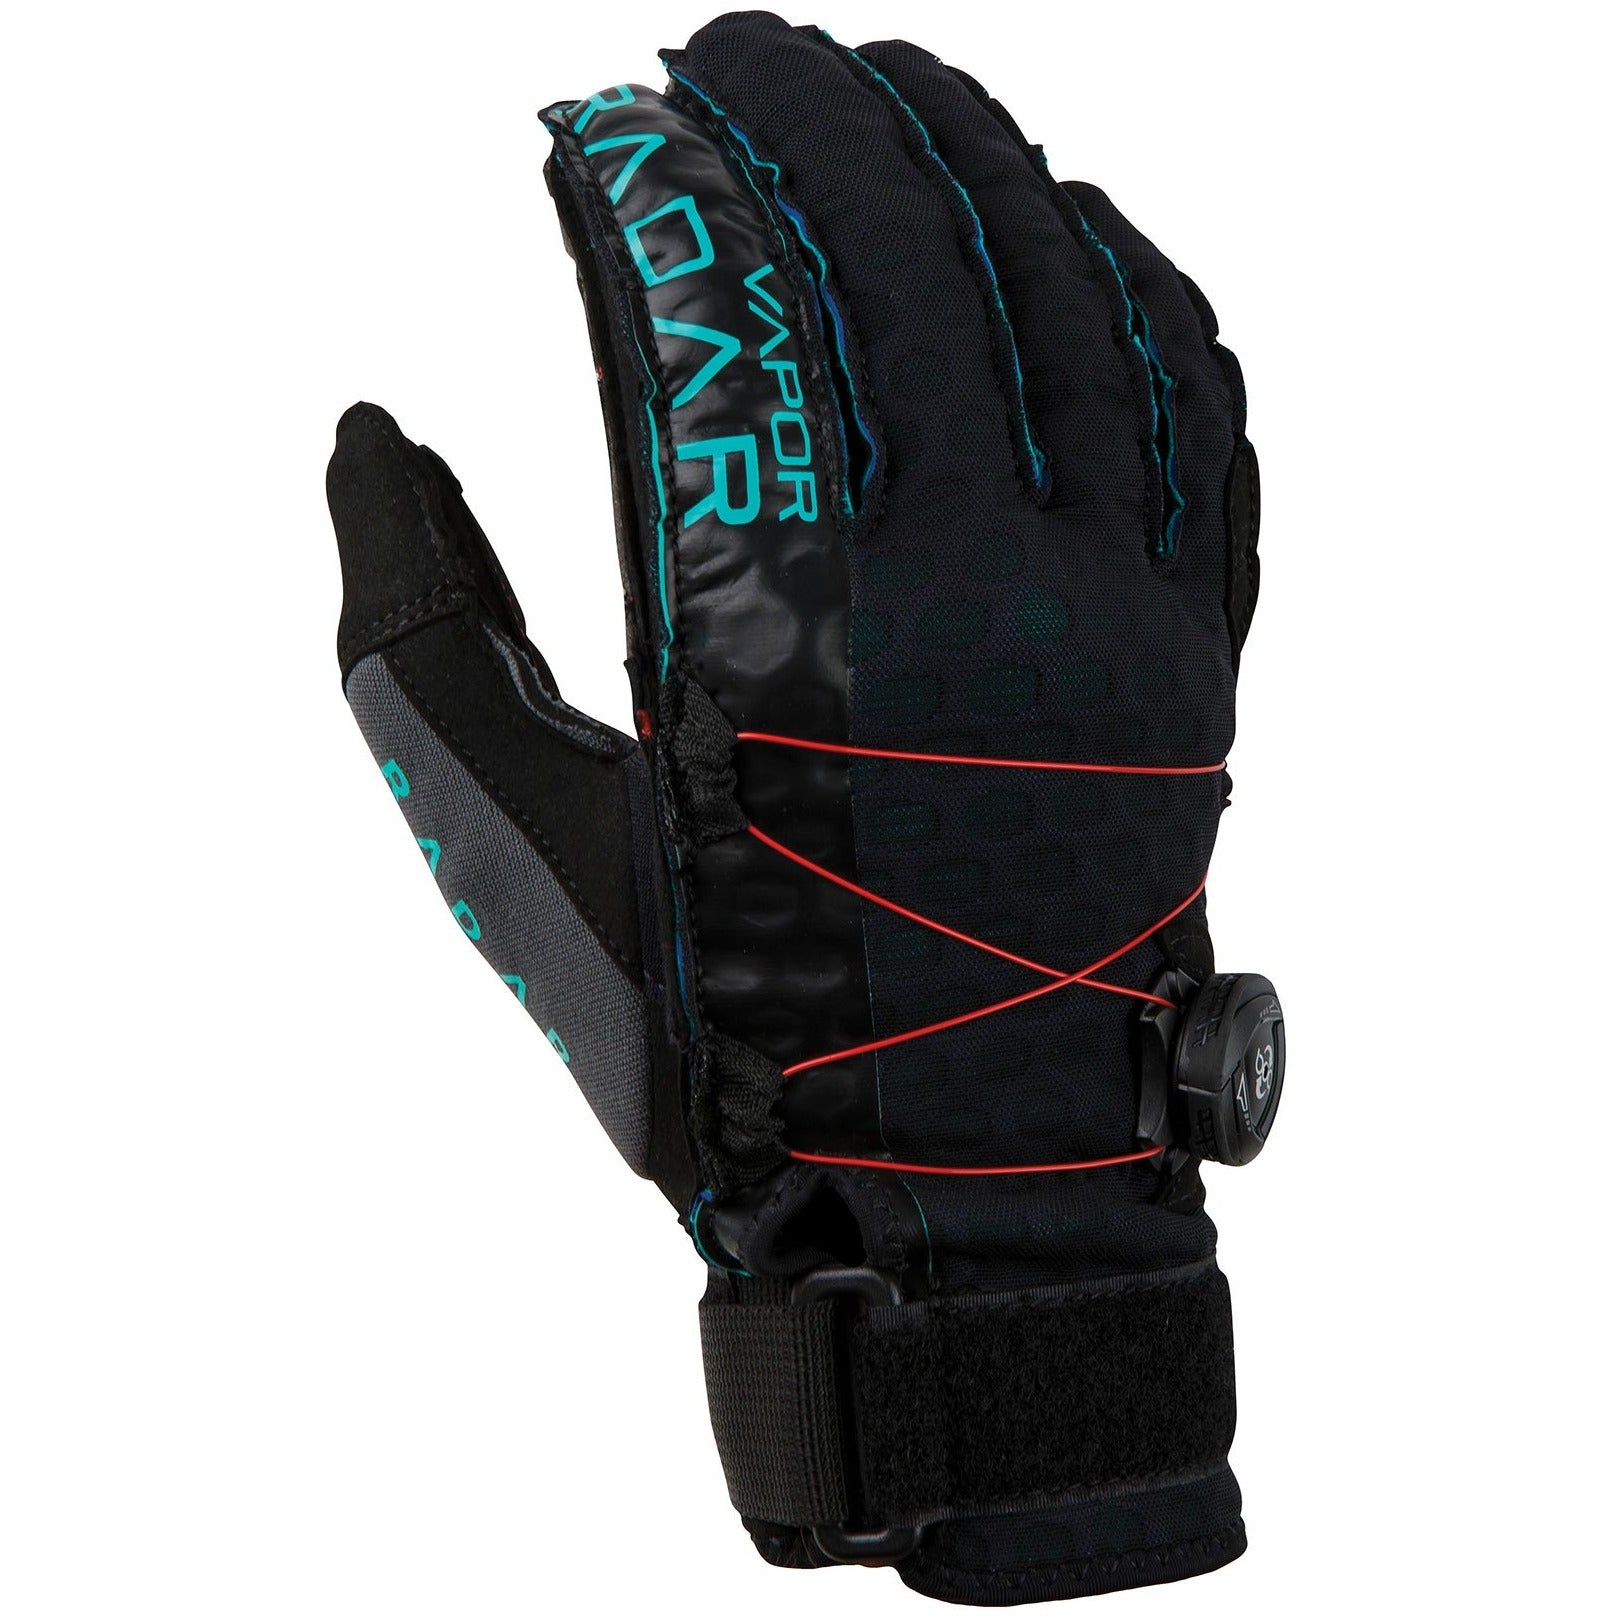 Radar Vapor BOA K Water Ski Gloves - 88 Gear